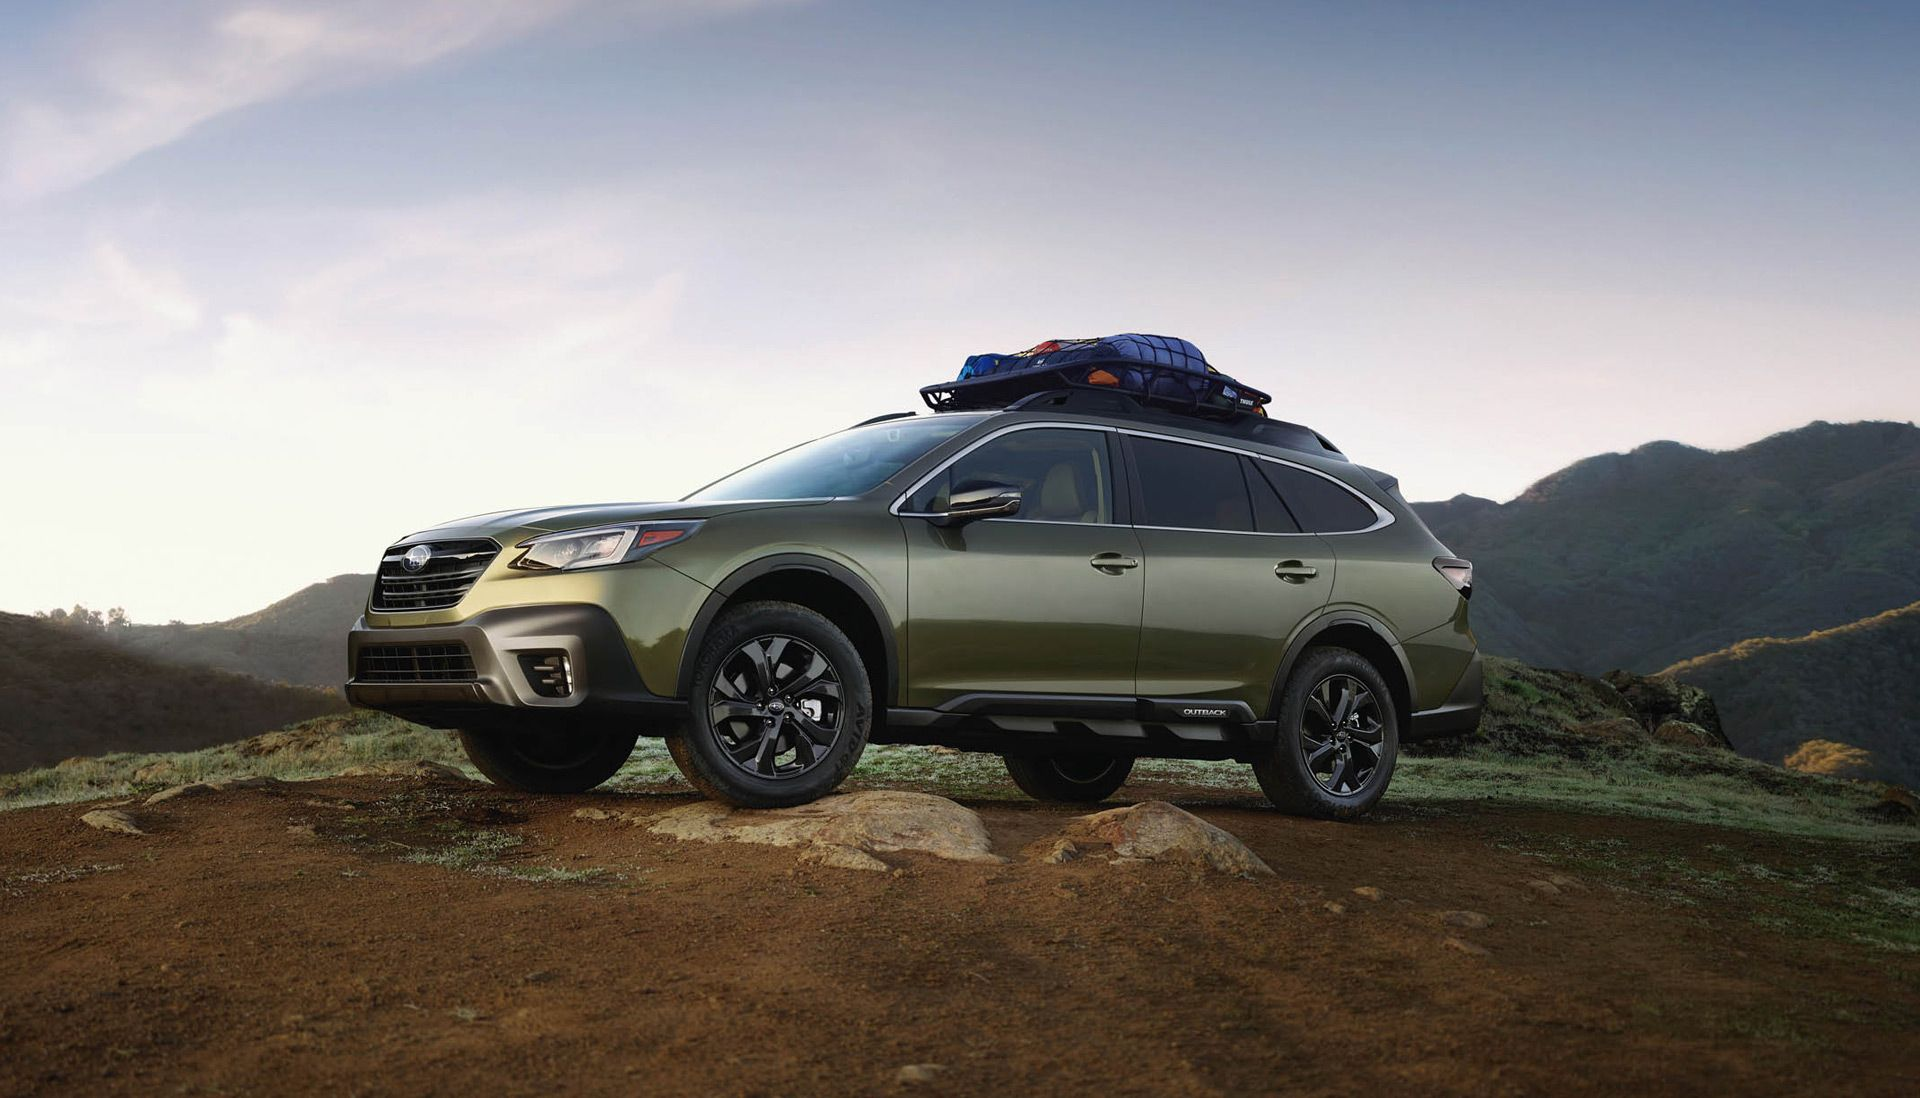 2020 Subaru Outback Debuts With Available Turbo Power Subaru Outback Subaru Outback